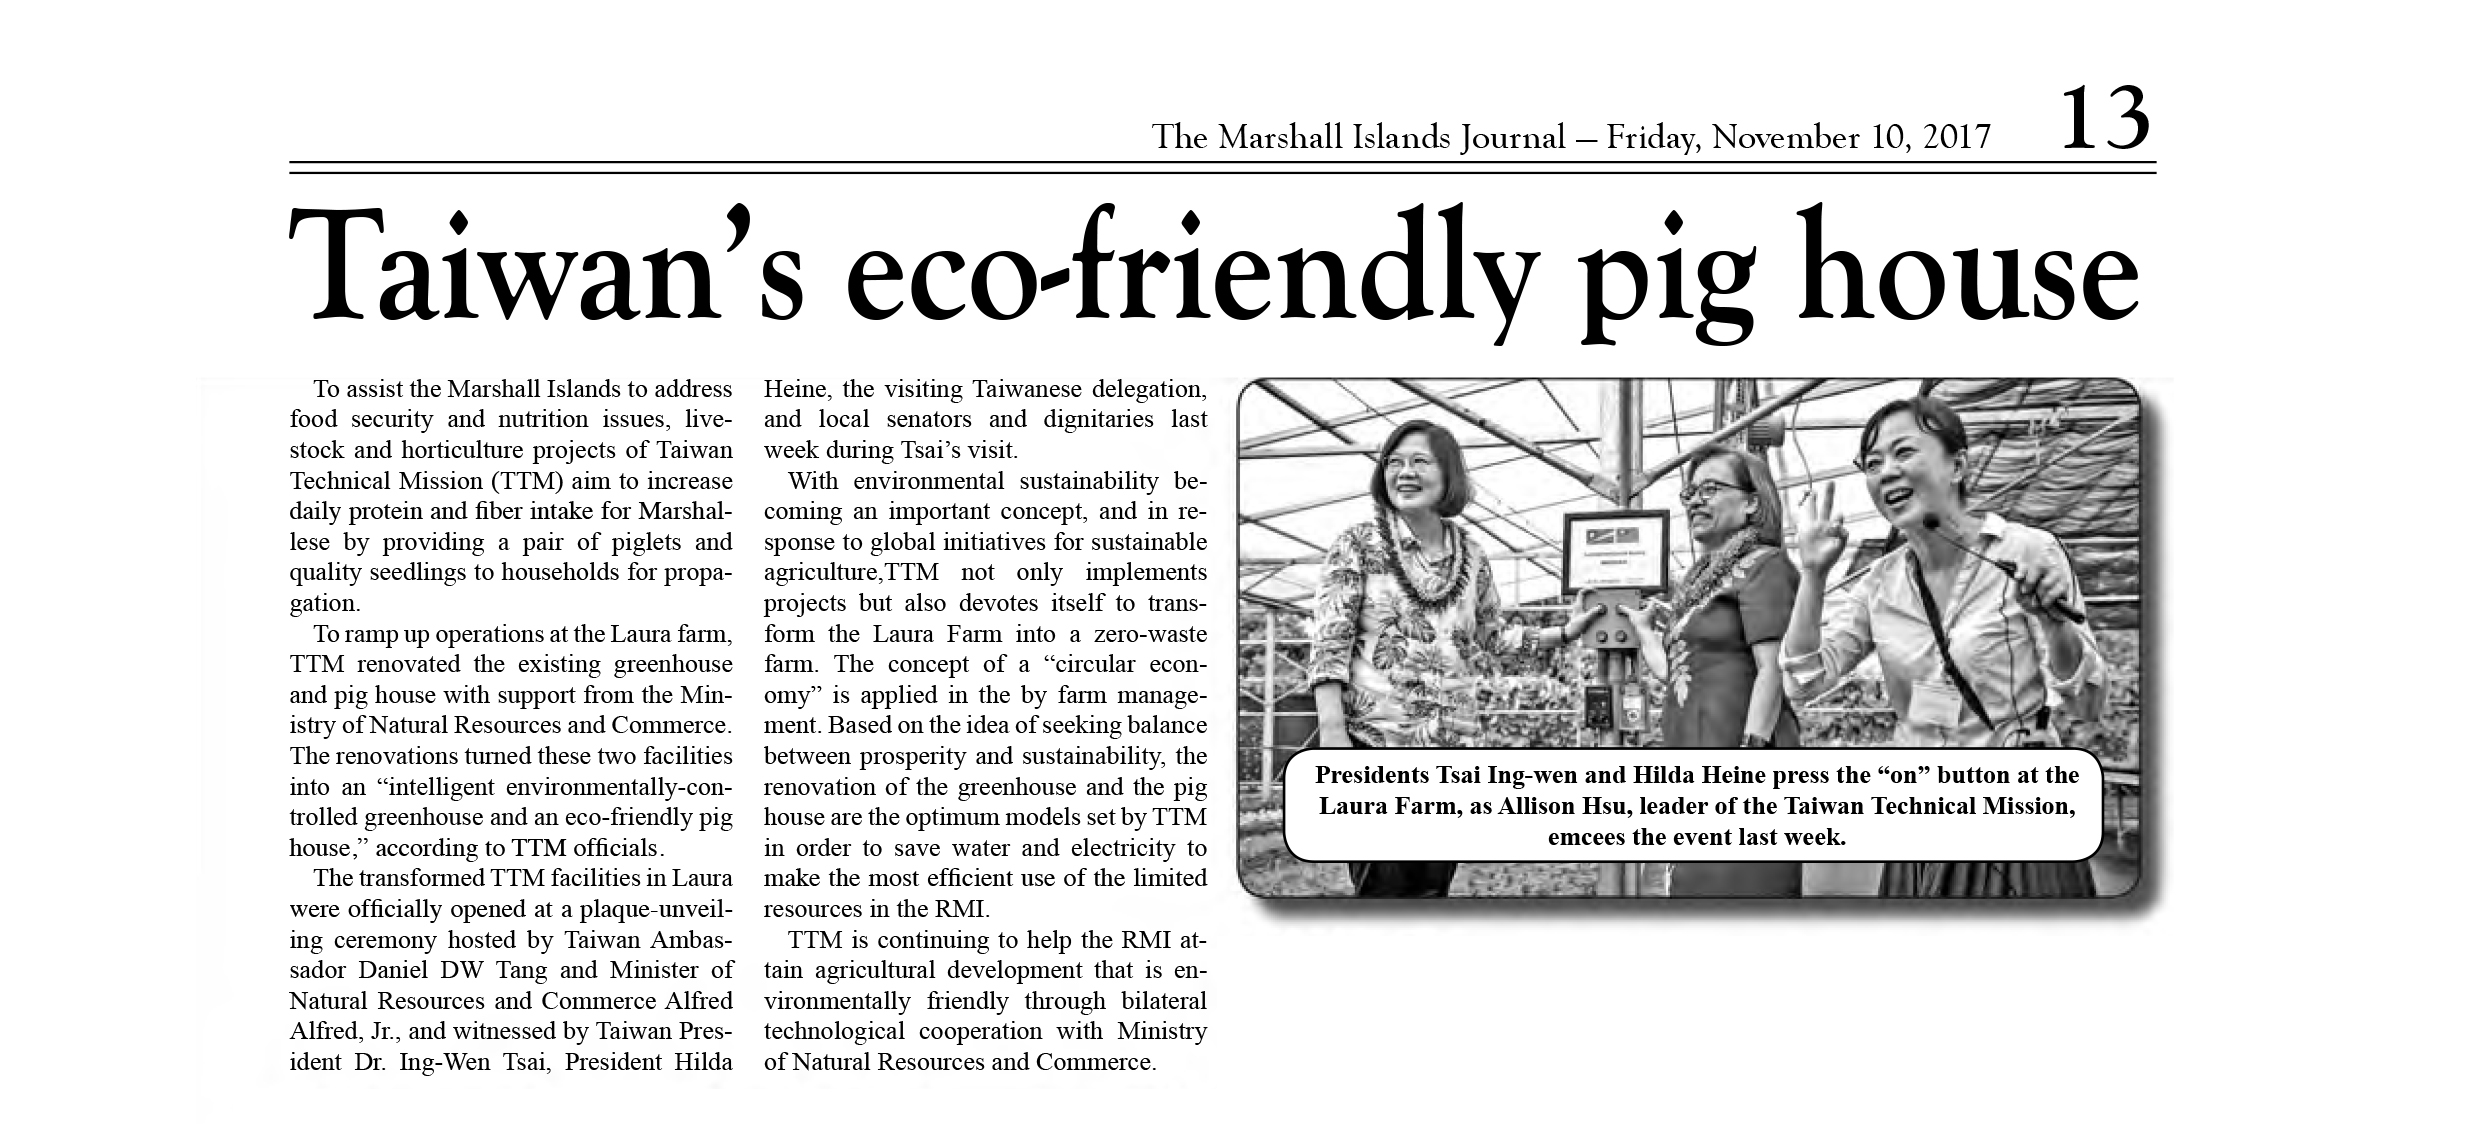 Taiwan's eco-friendly pig house